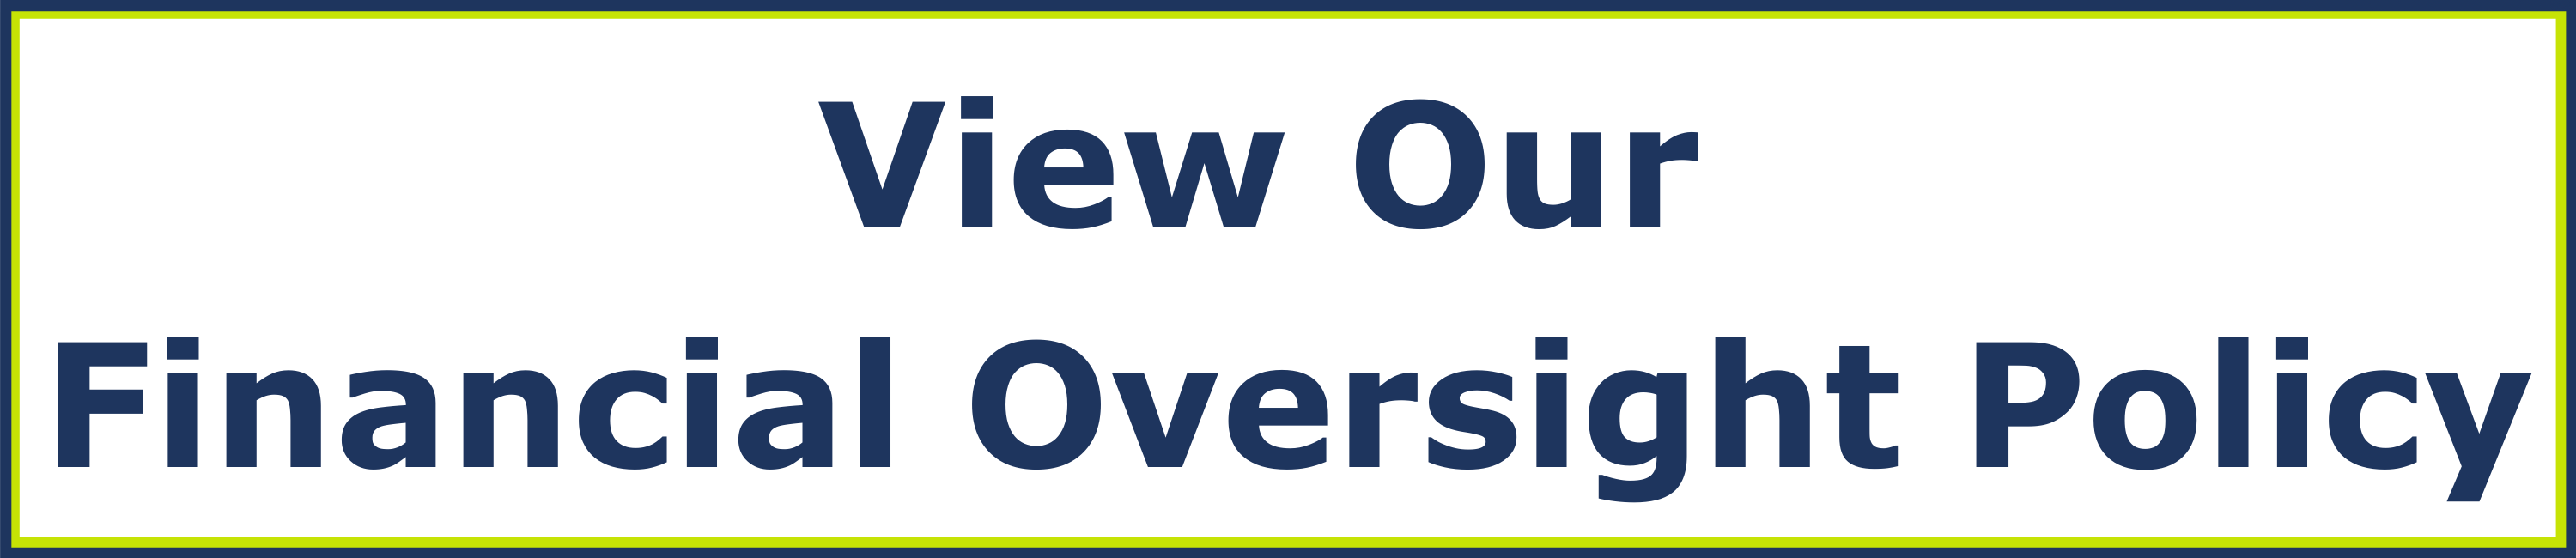 View our financial oversight policy.